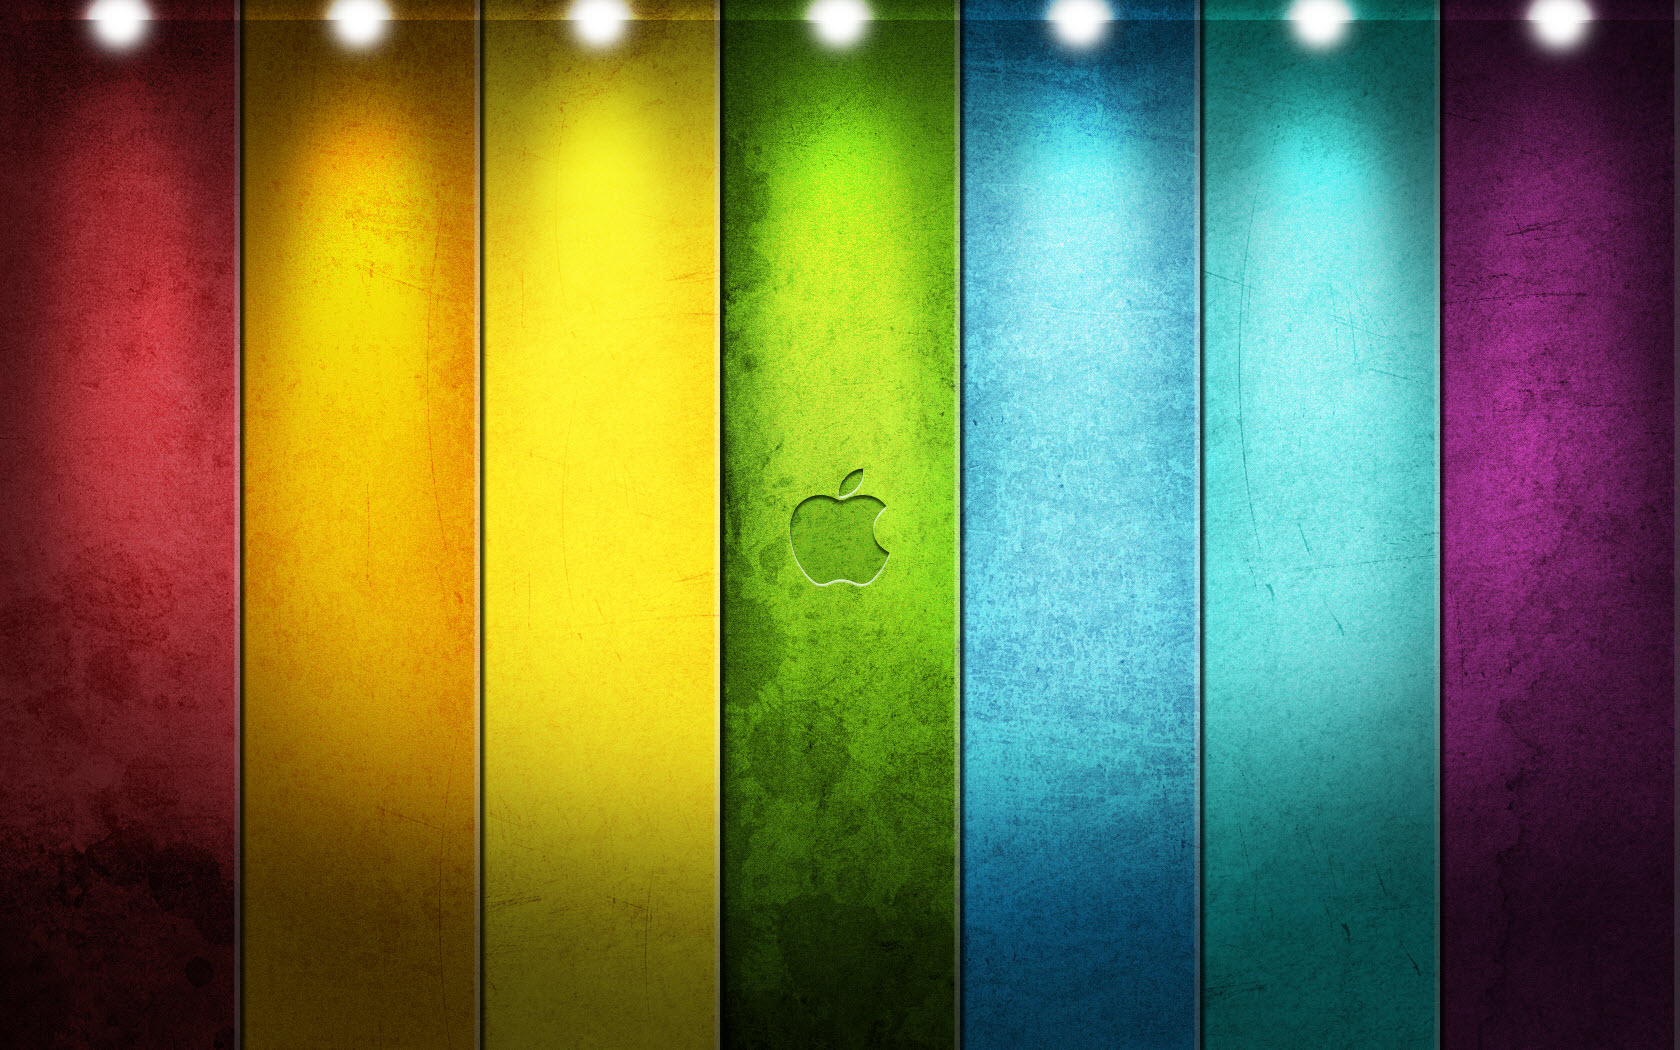 Wallpapers hd colorful - SF Wallpaper